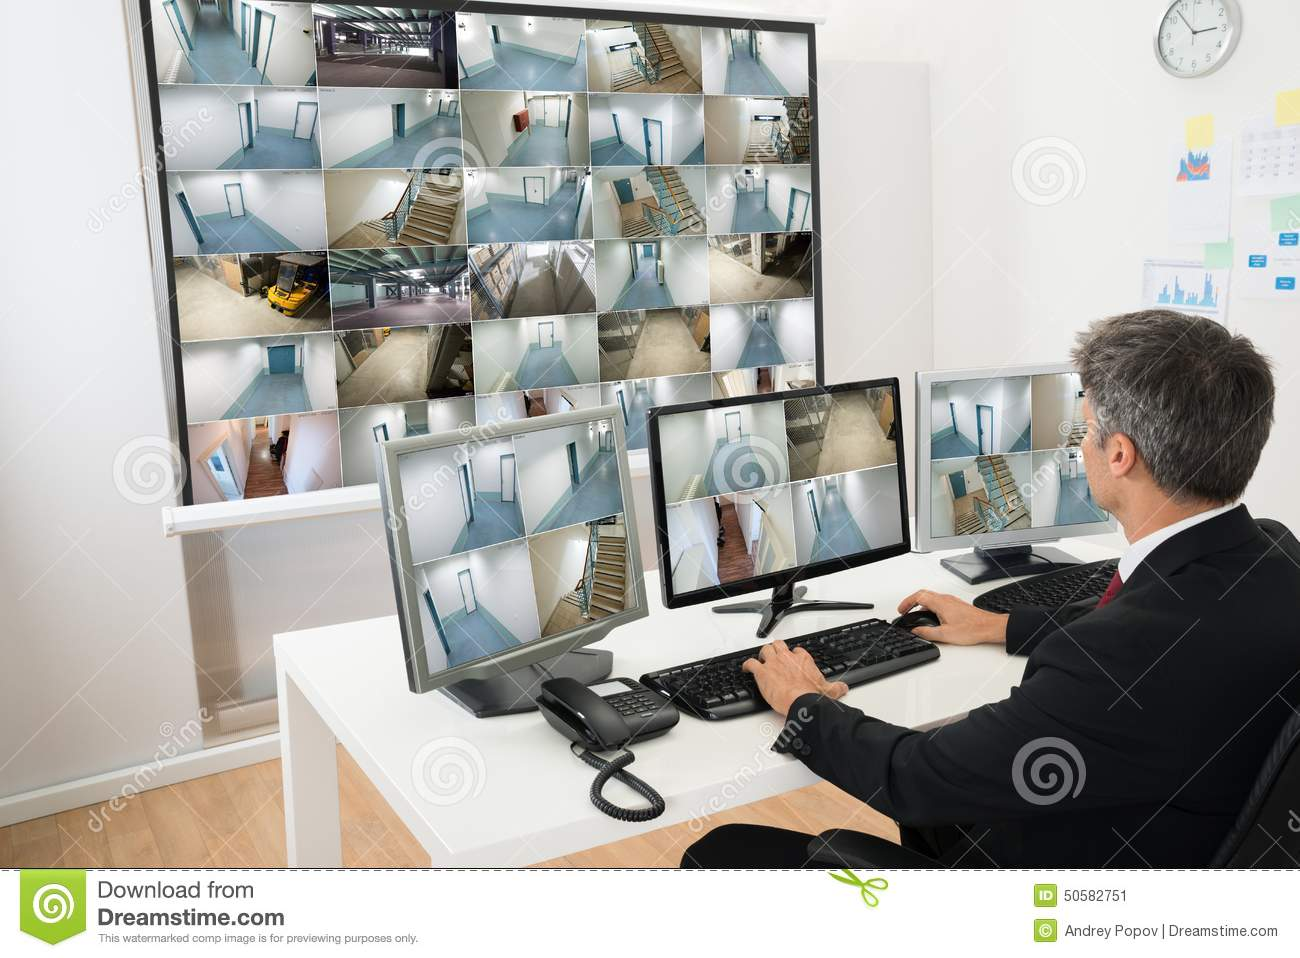 Man In Control Room Monitoring Cctv Footage Stock Photo.